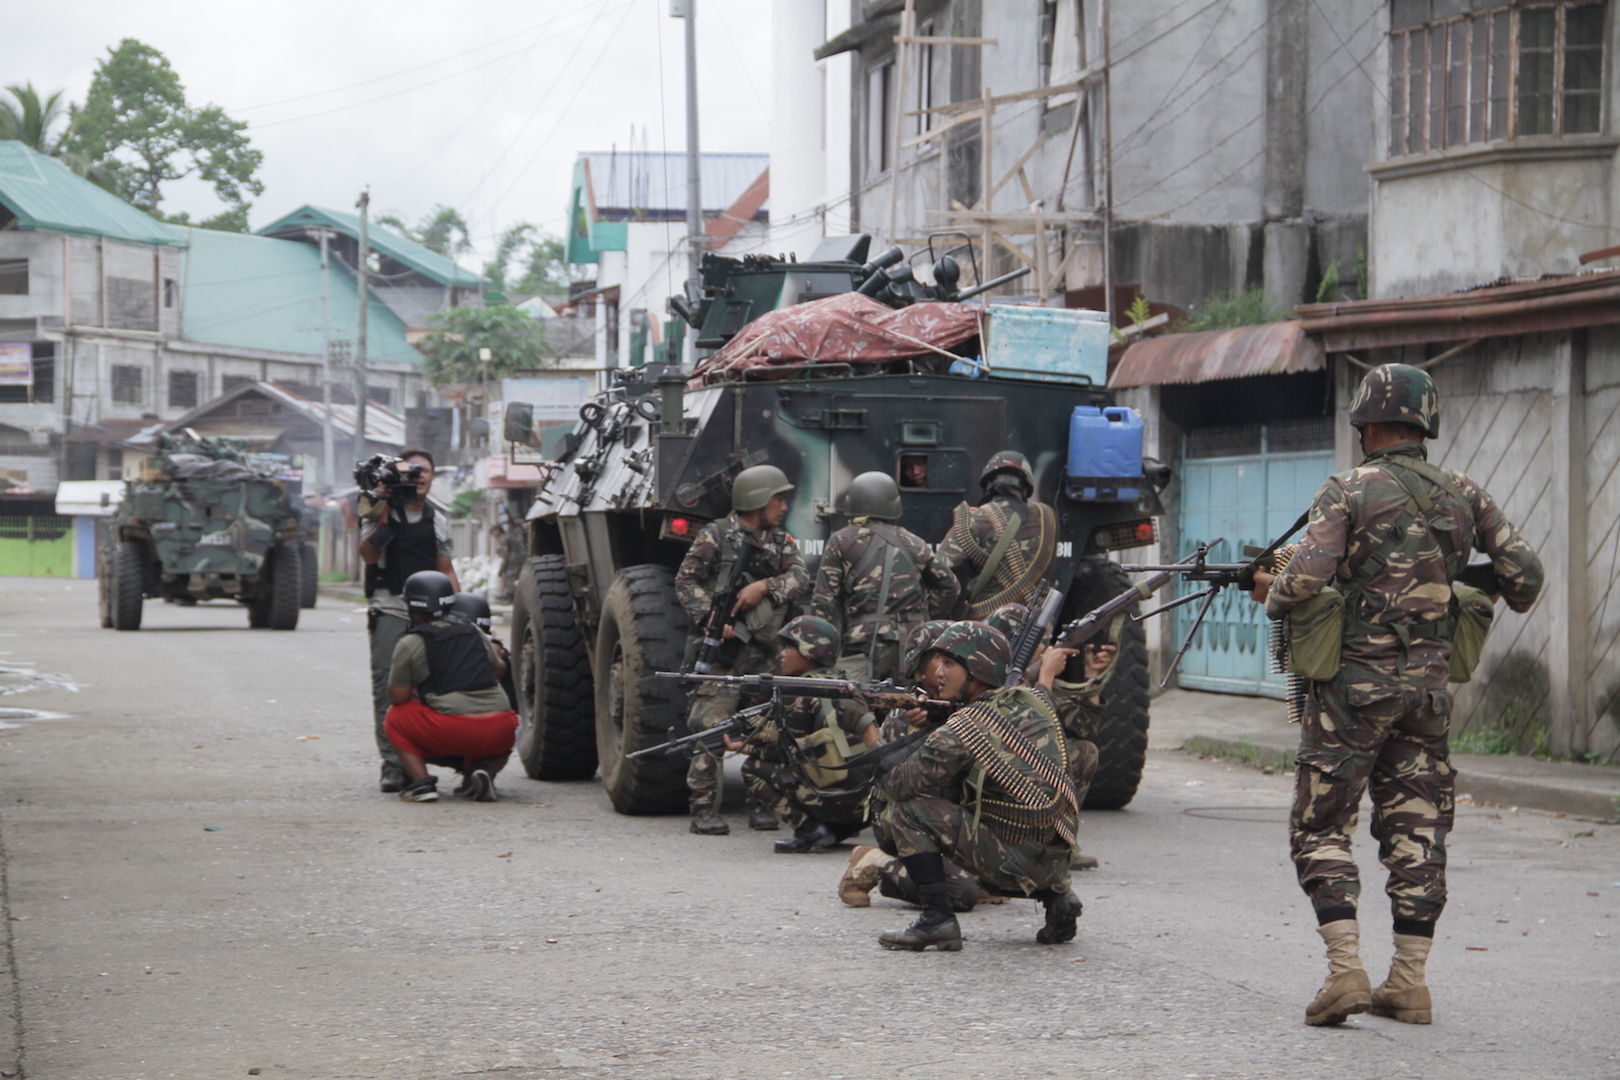 Philippines soldiers, accompanied by journalists, patrol Marawi which is under siege by Islamist militants